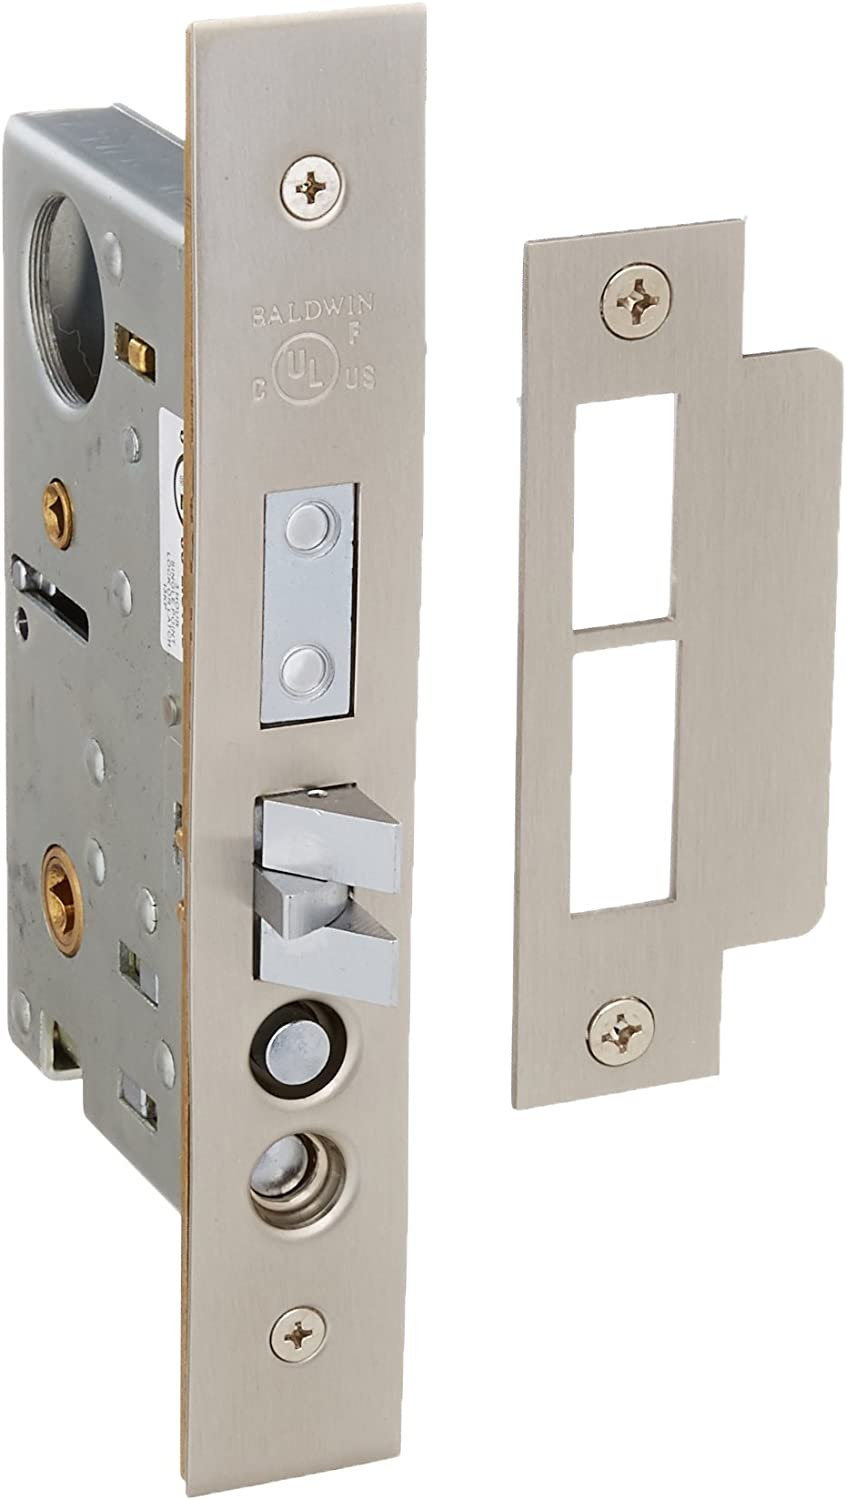 Lifetime Satin Nickel Baldwin 6320.LLS Left Handed Lever Strength Entrance and Apartment Mortise Lock